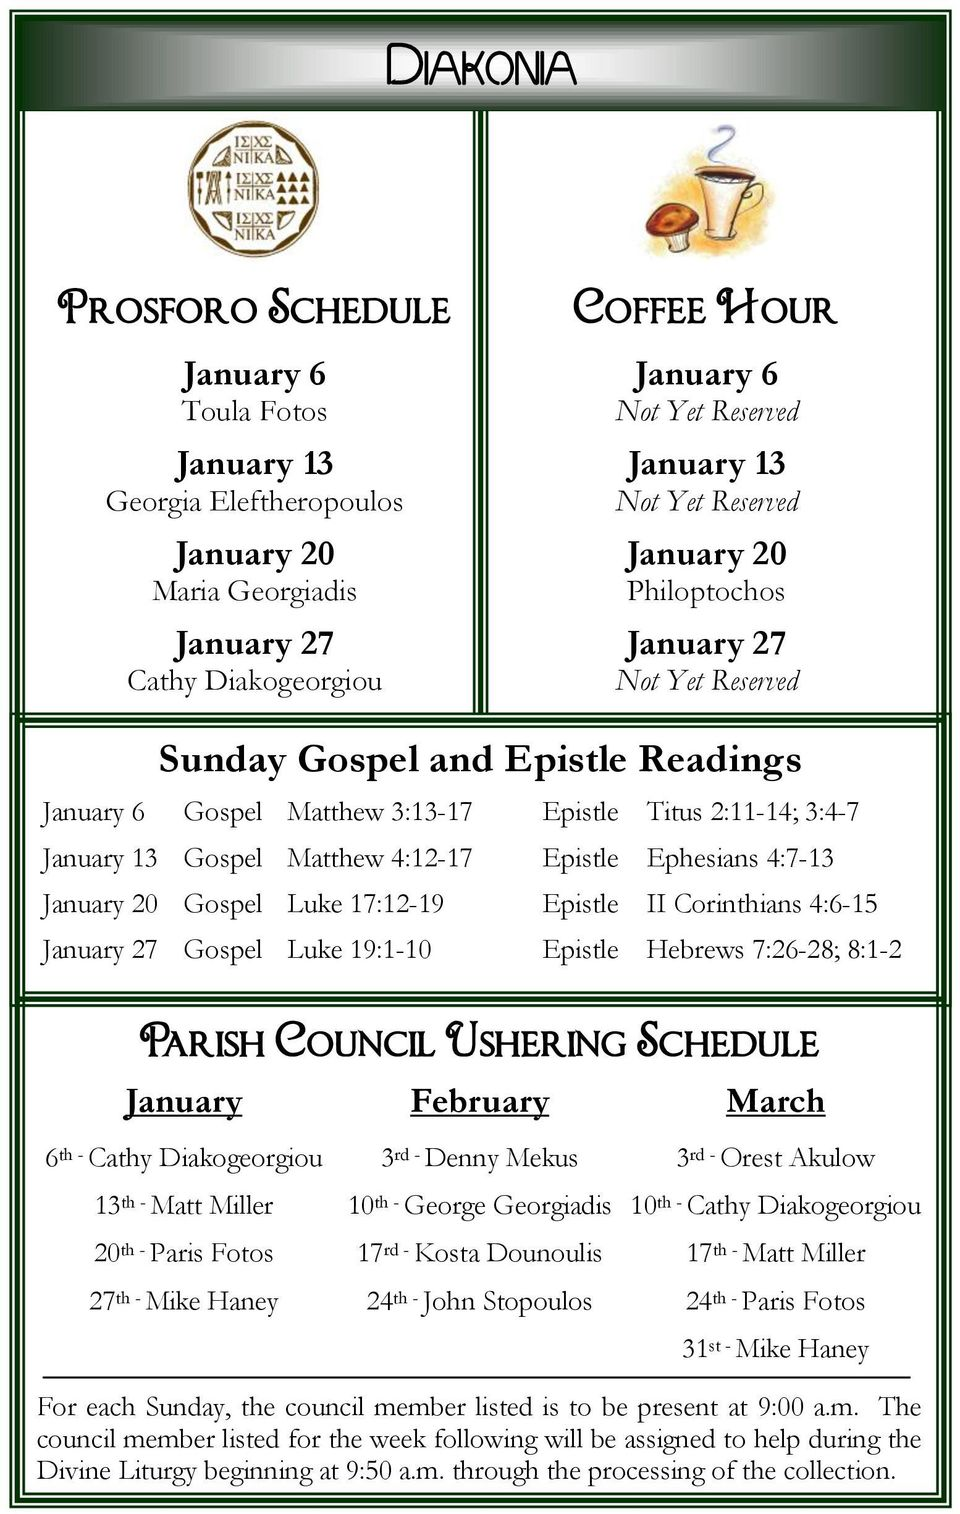 Epistle Ephesians 4:7-13 January 20 Gospel Luke 17:12-19 Epistle II Corinthians 4:6-15 January 27 Gospel Luke 19:1-10 Epistle Hebrews 7:26-28; 8:1-2 Parish Council Ushering Schedule January 6 th -